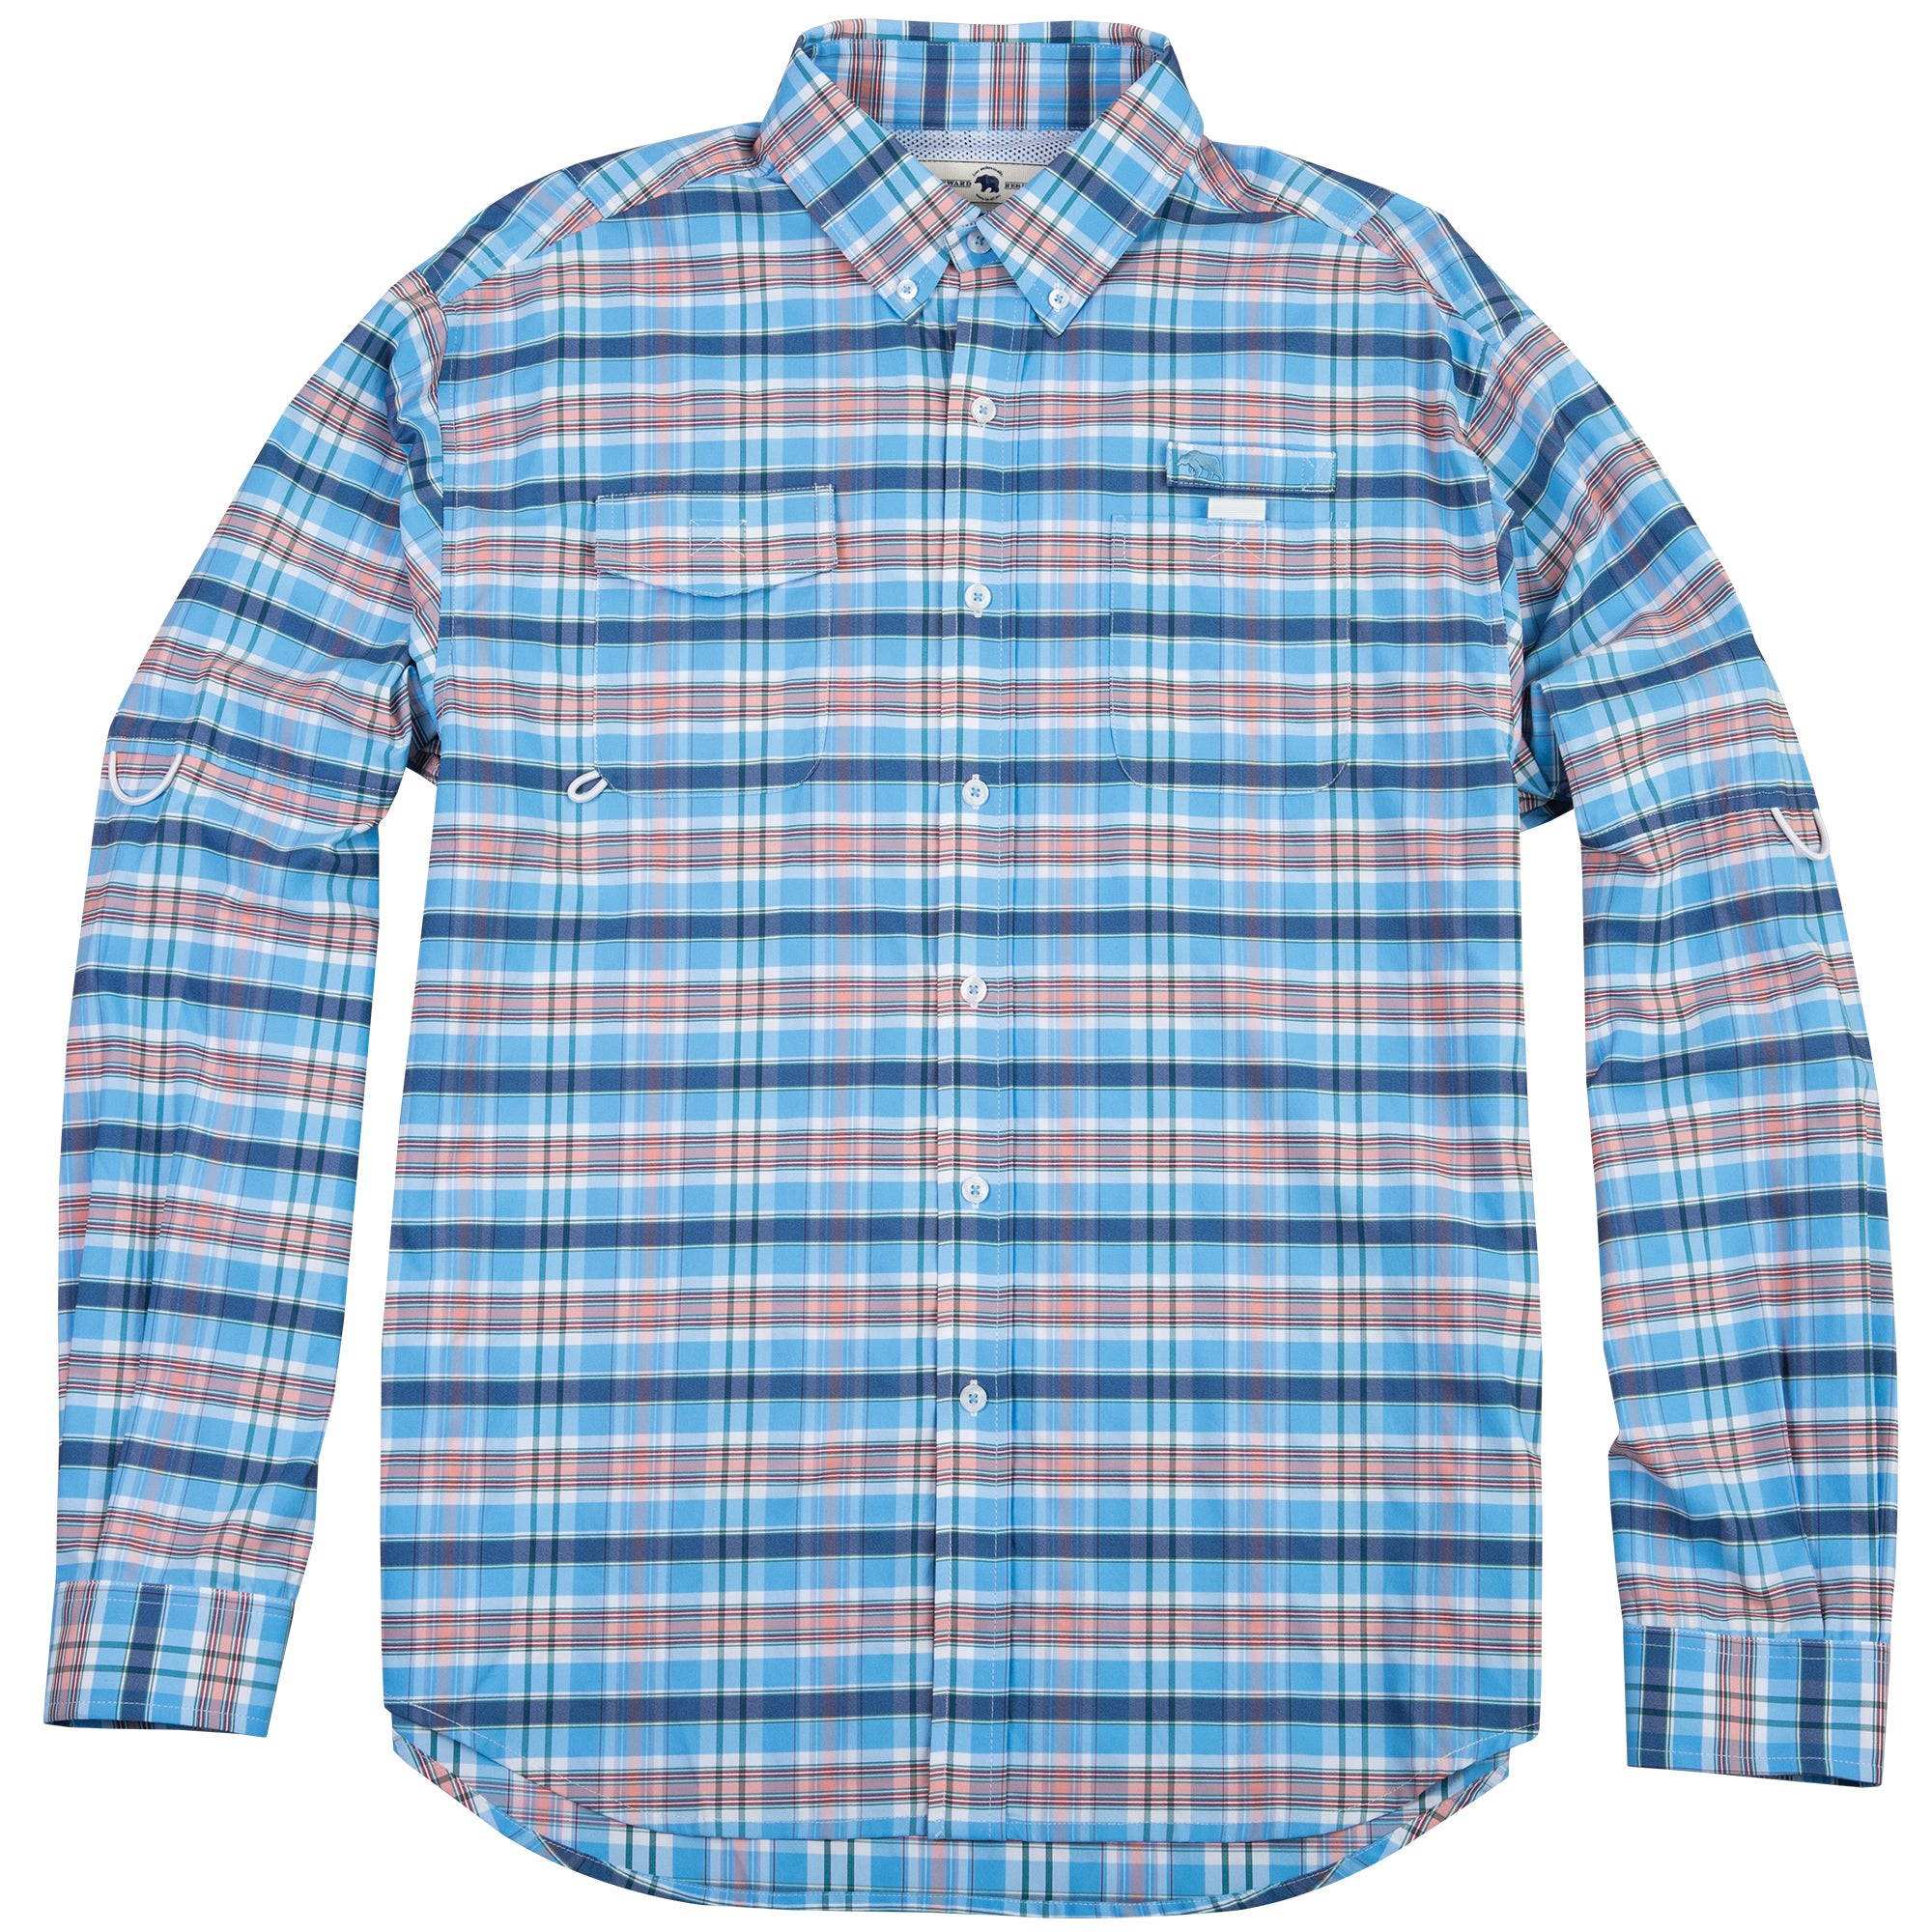 Islamorada Fishing Shirt - Vintage Plaid - OnwardReserve